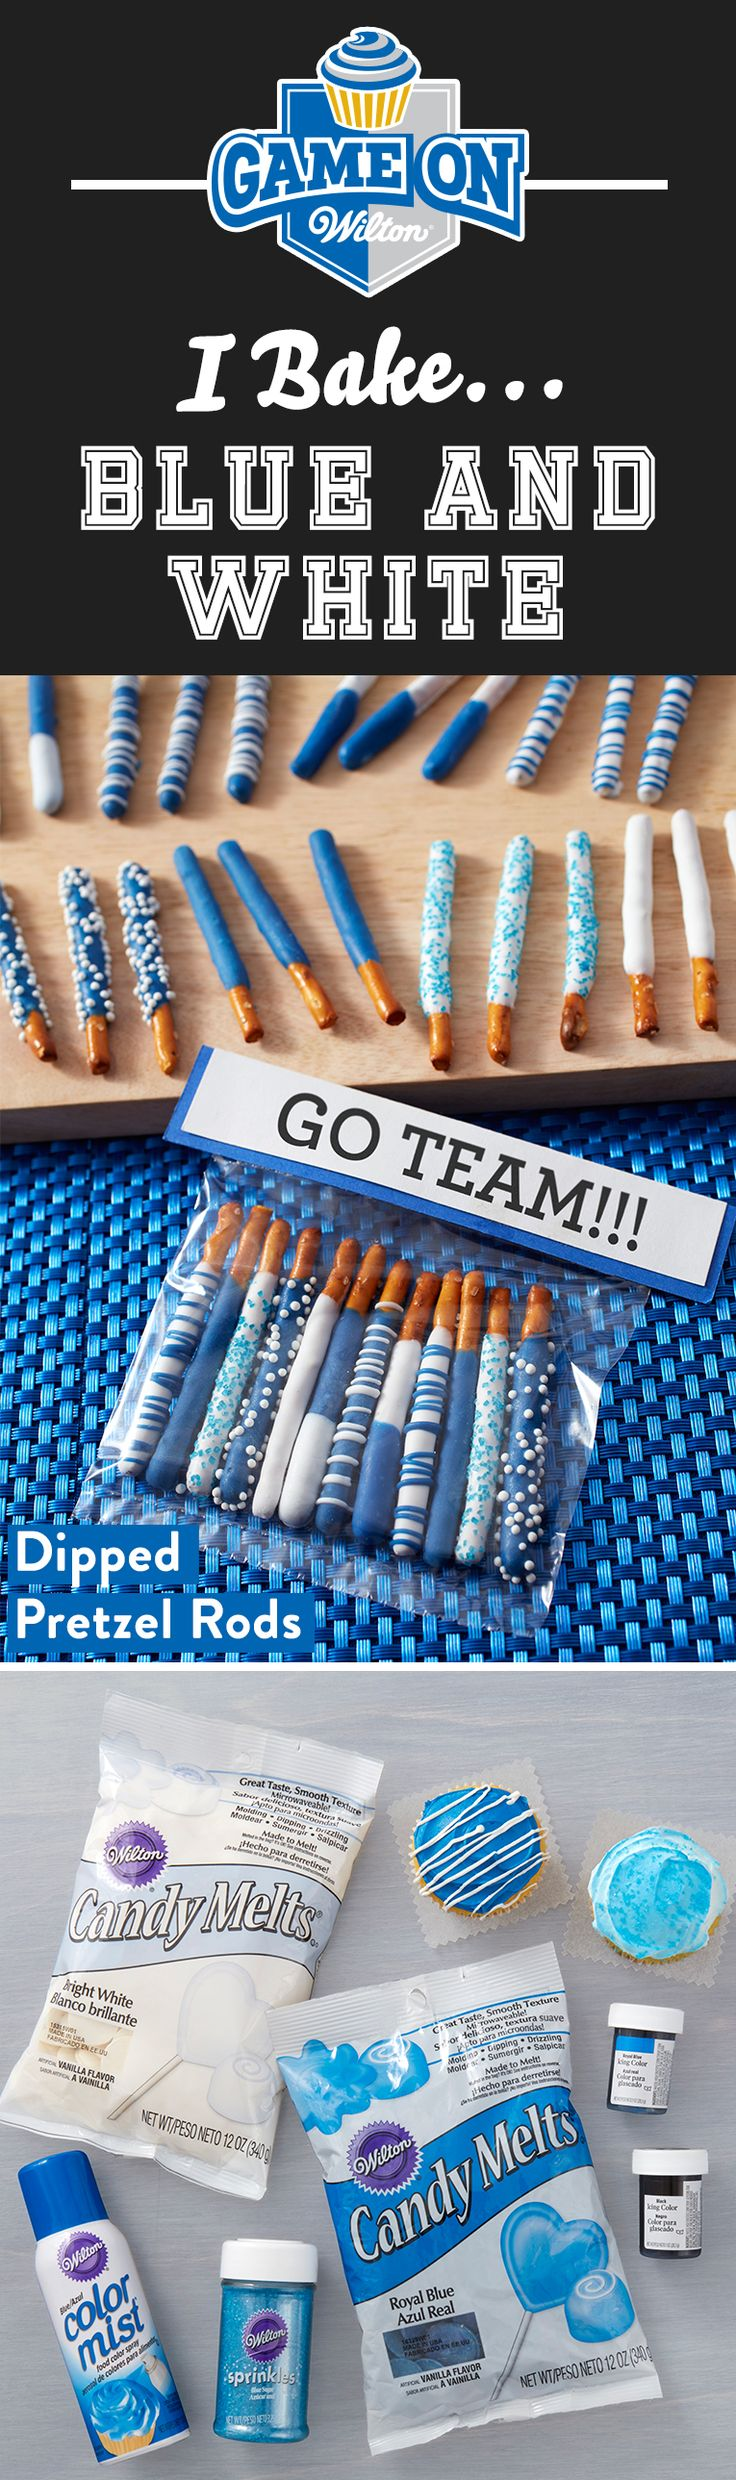 Game for colors - Are Your Team Colors Blue And White Create Fun Blue And White Game Day Snacks